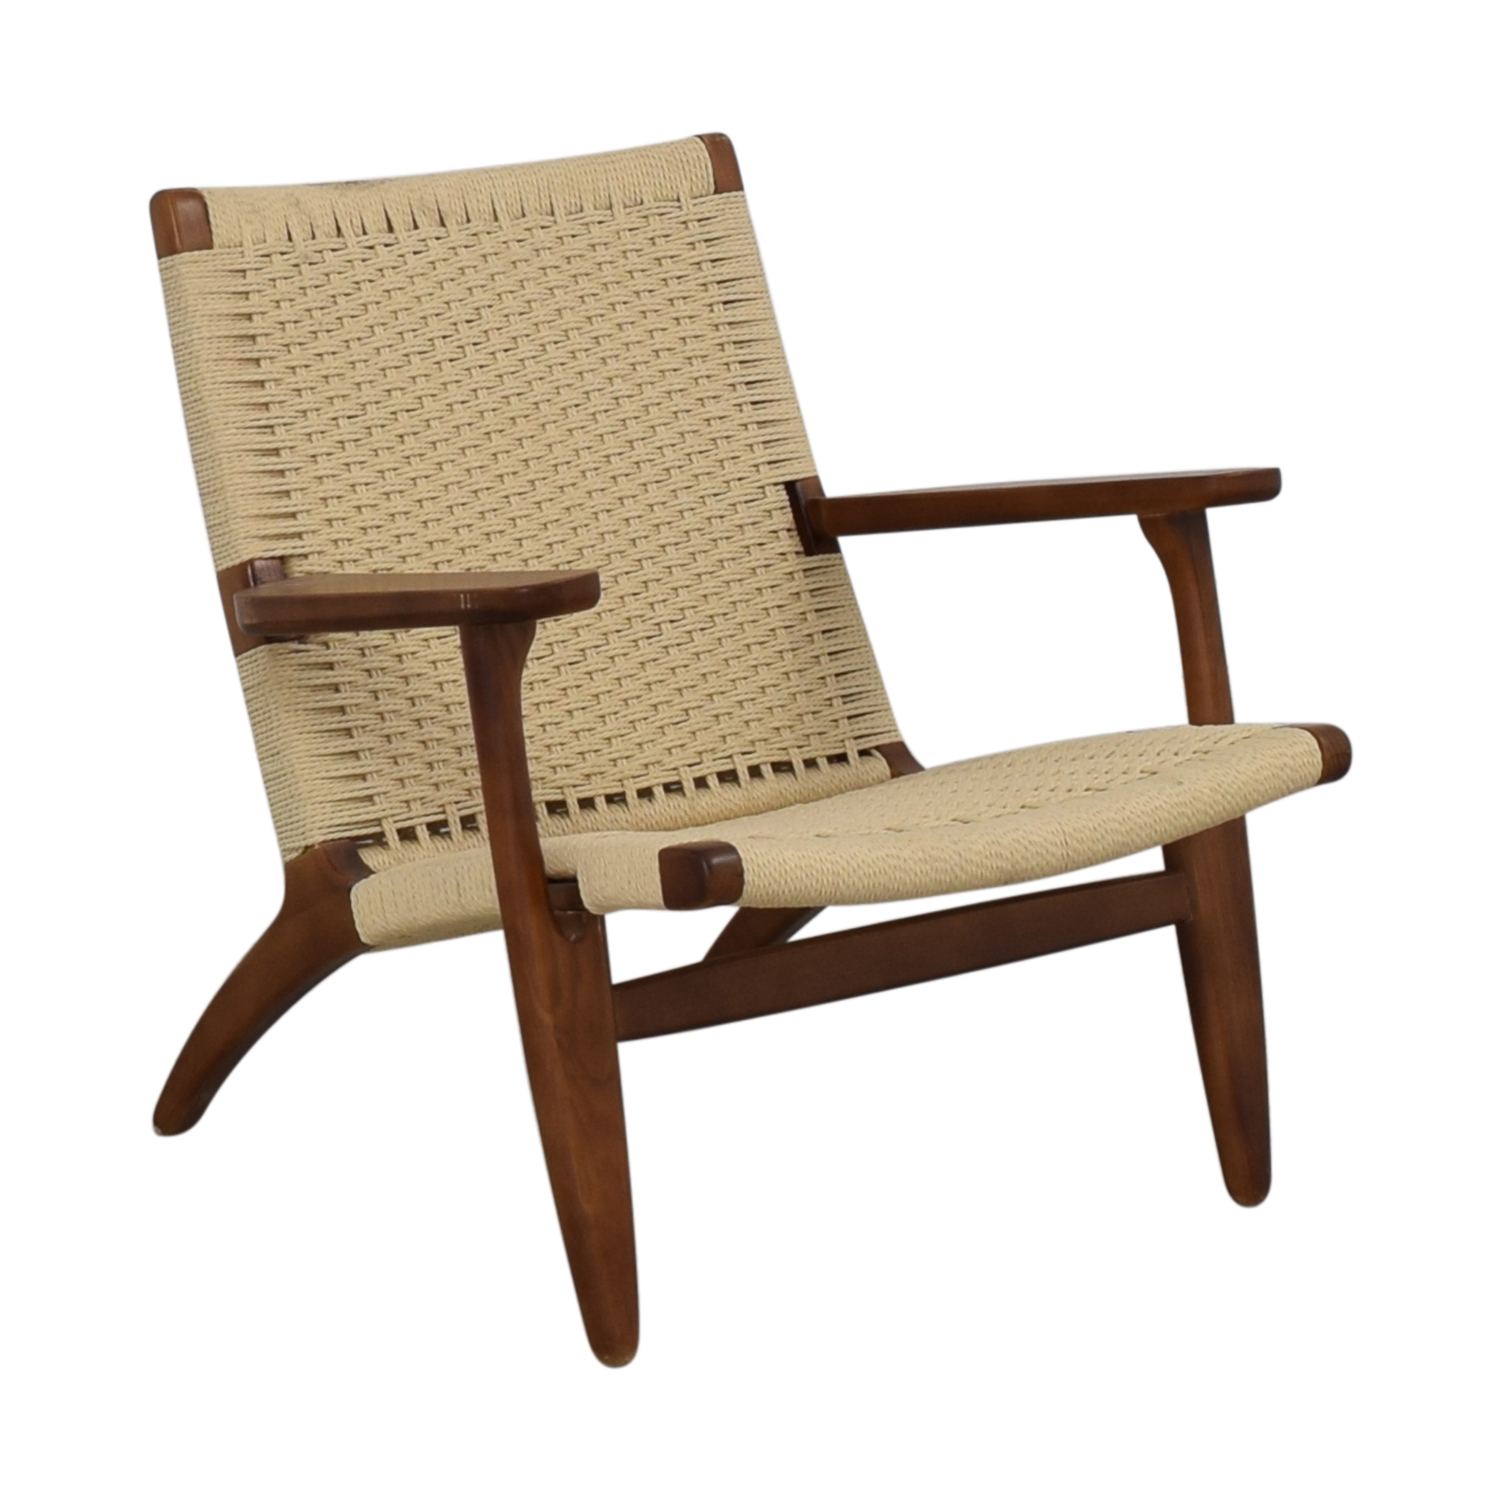 Mid Century Woven Lounger Chair used